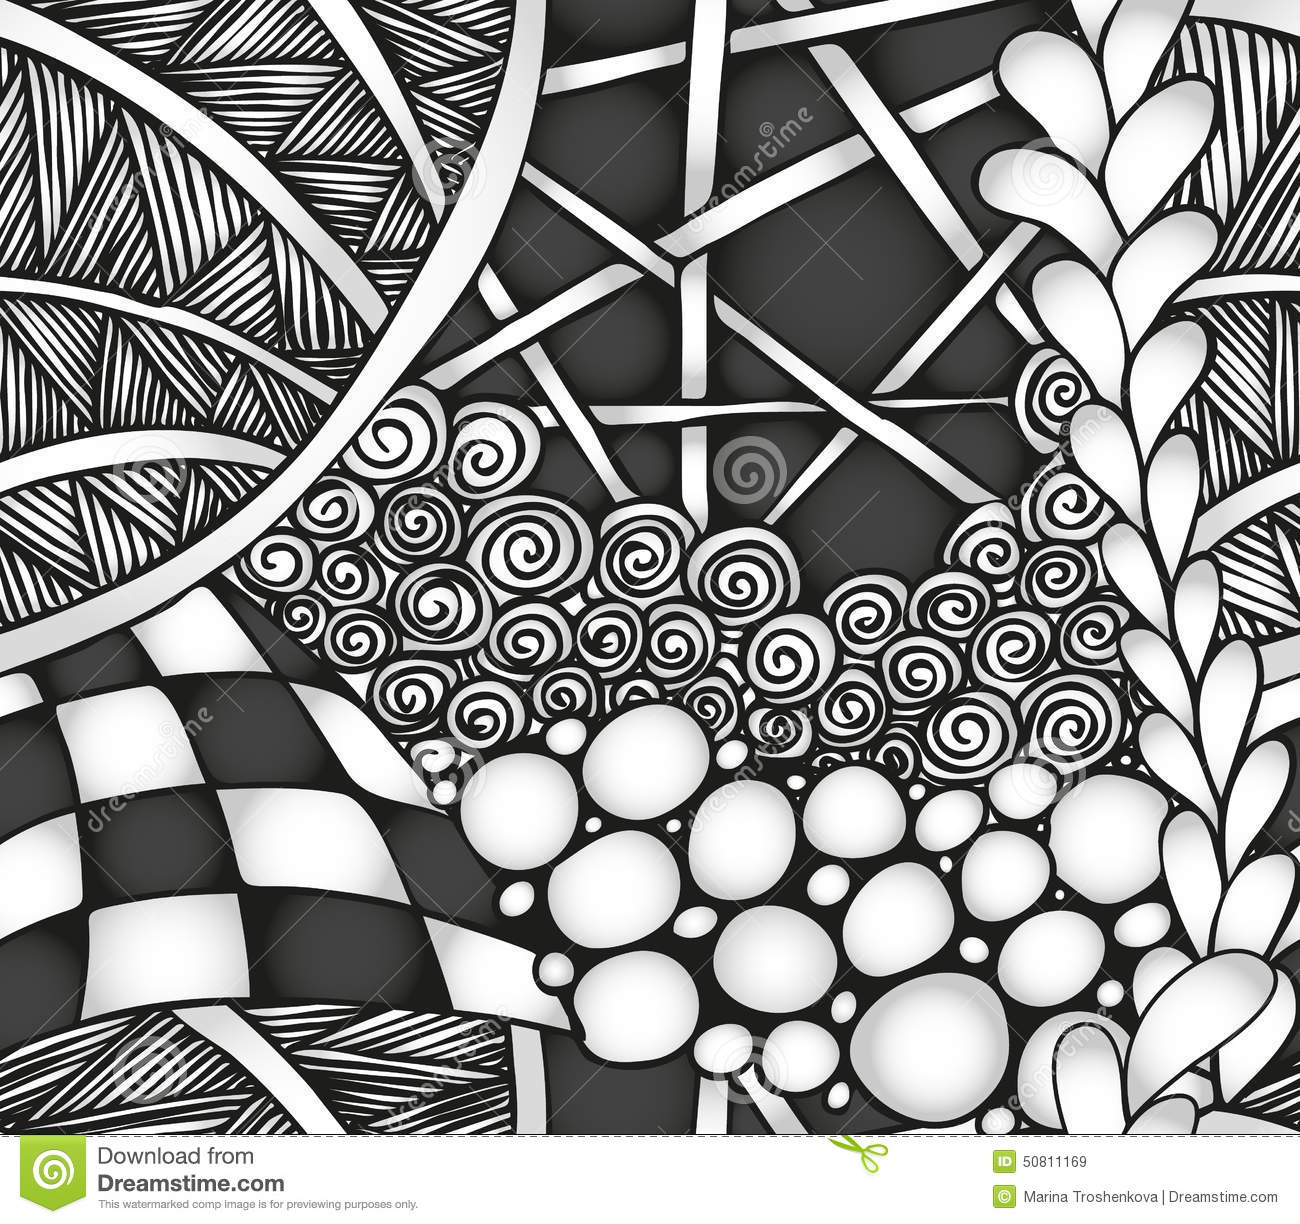 abstract monochrome zentangle seamless pattern